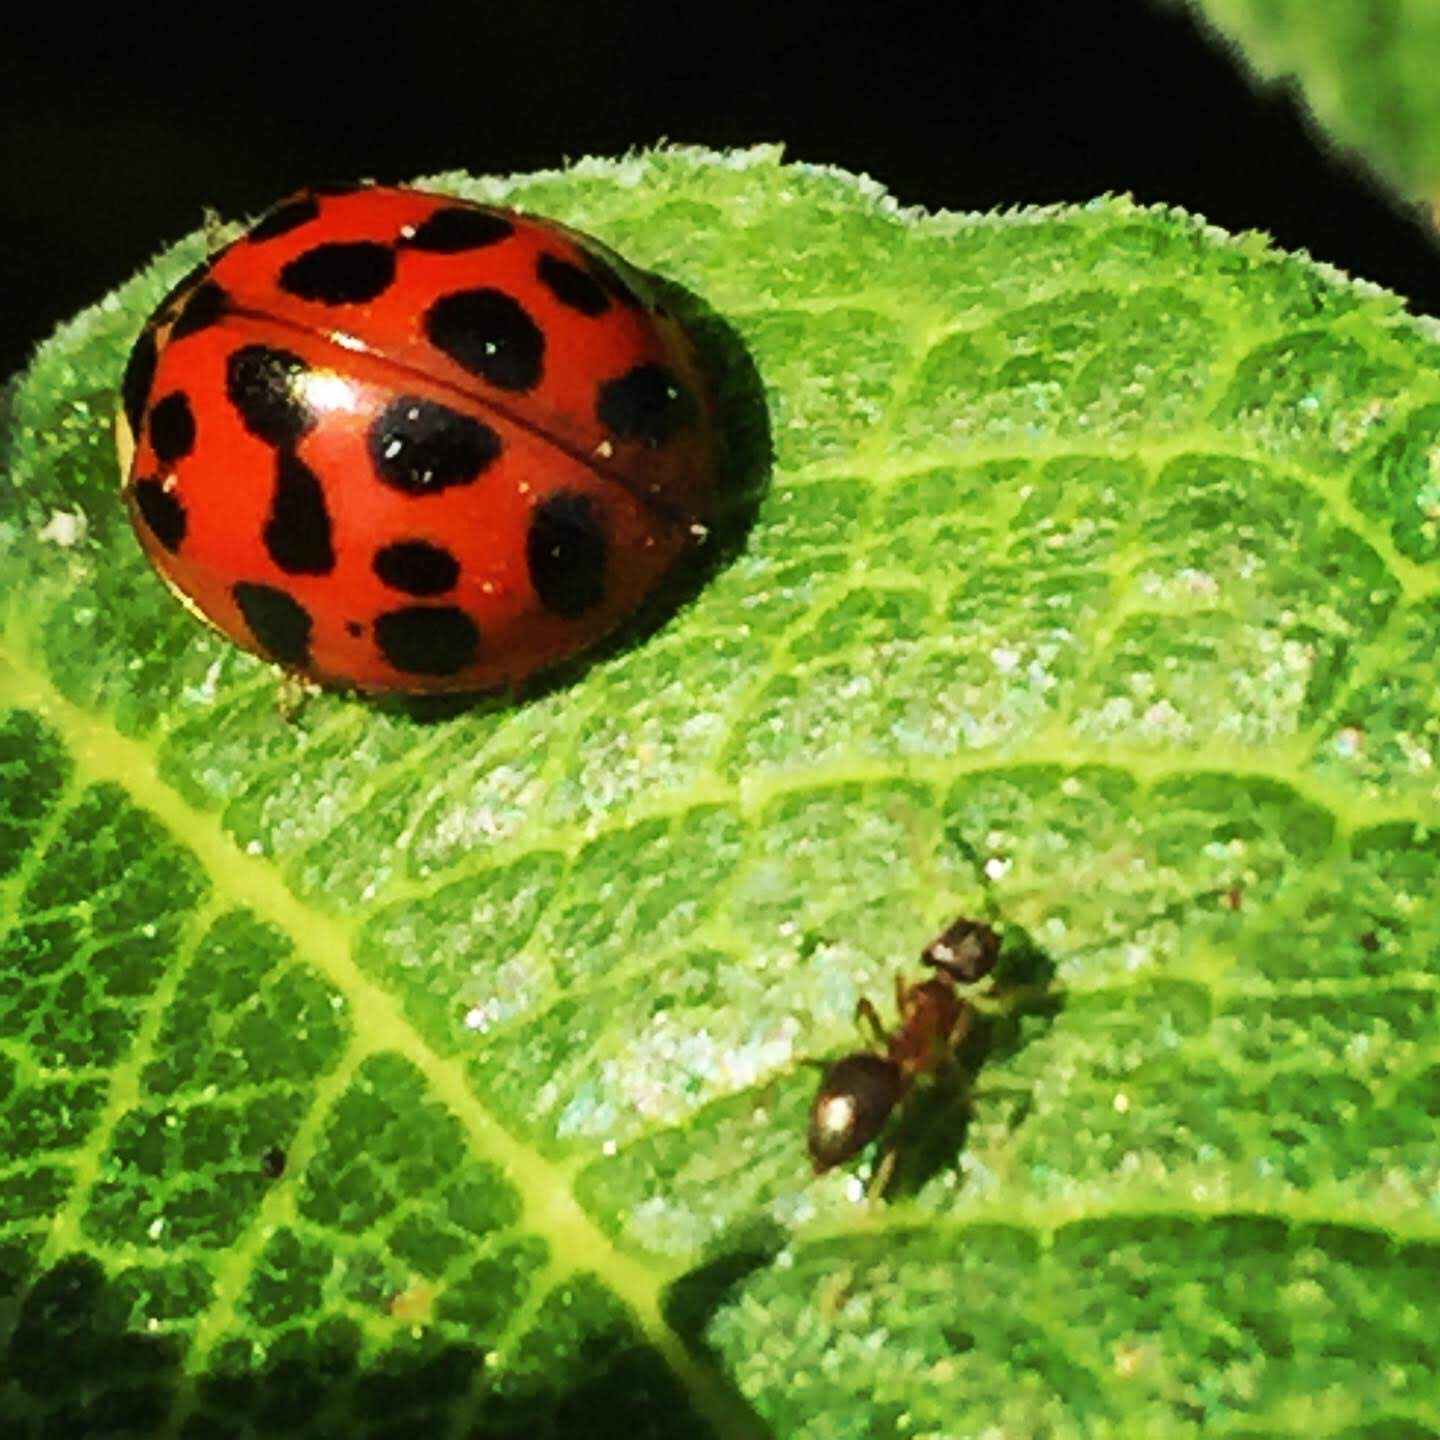 Ladybug and friend